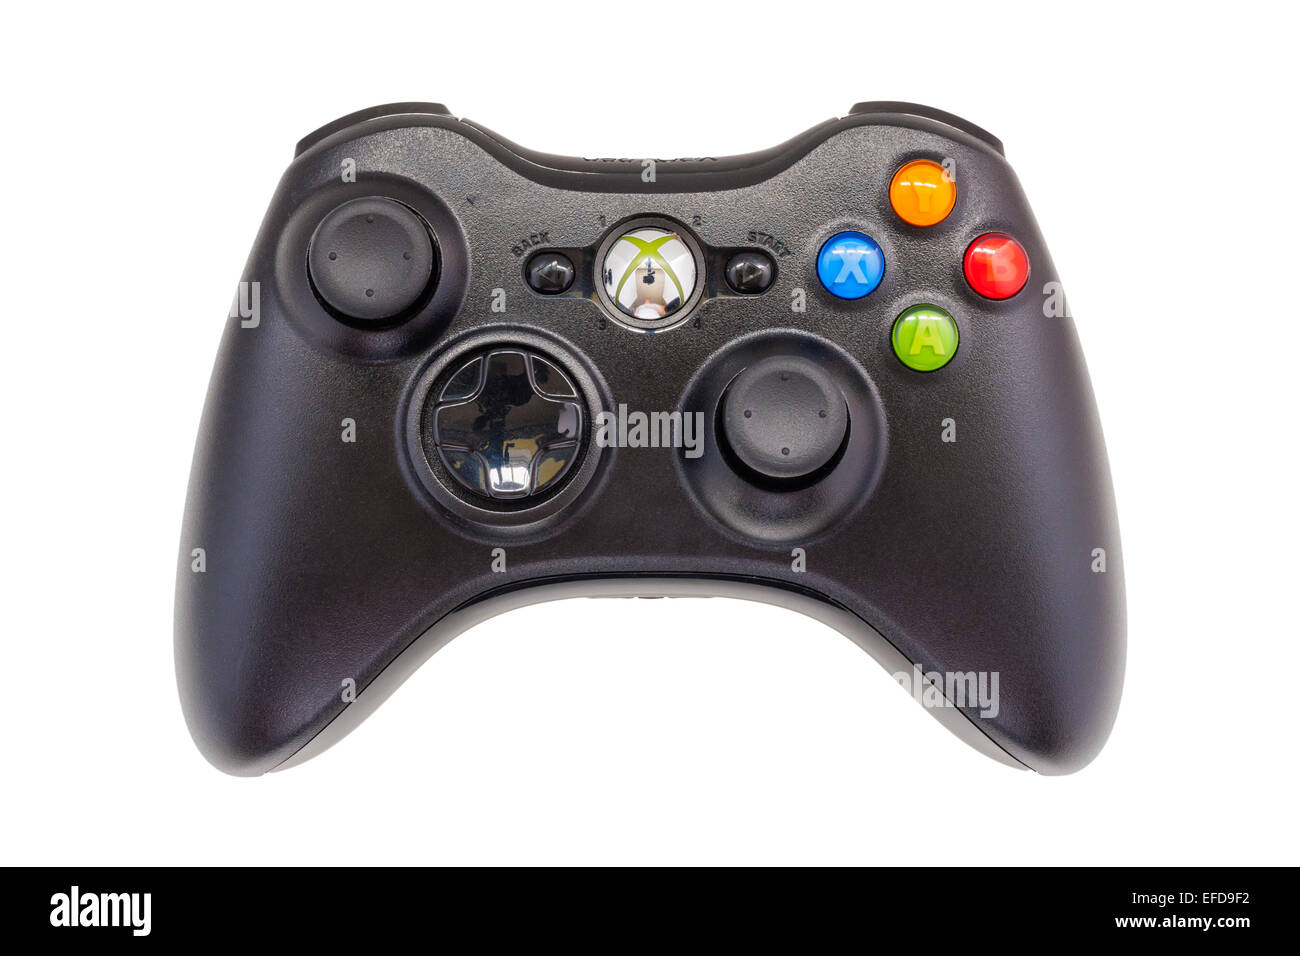 An XBOX 360 game controller handset on a white background - Stock Image